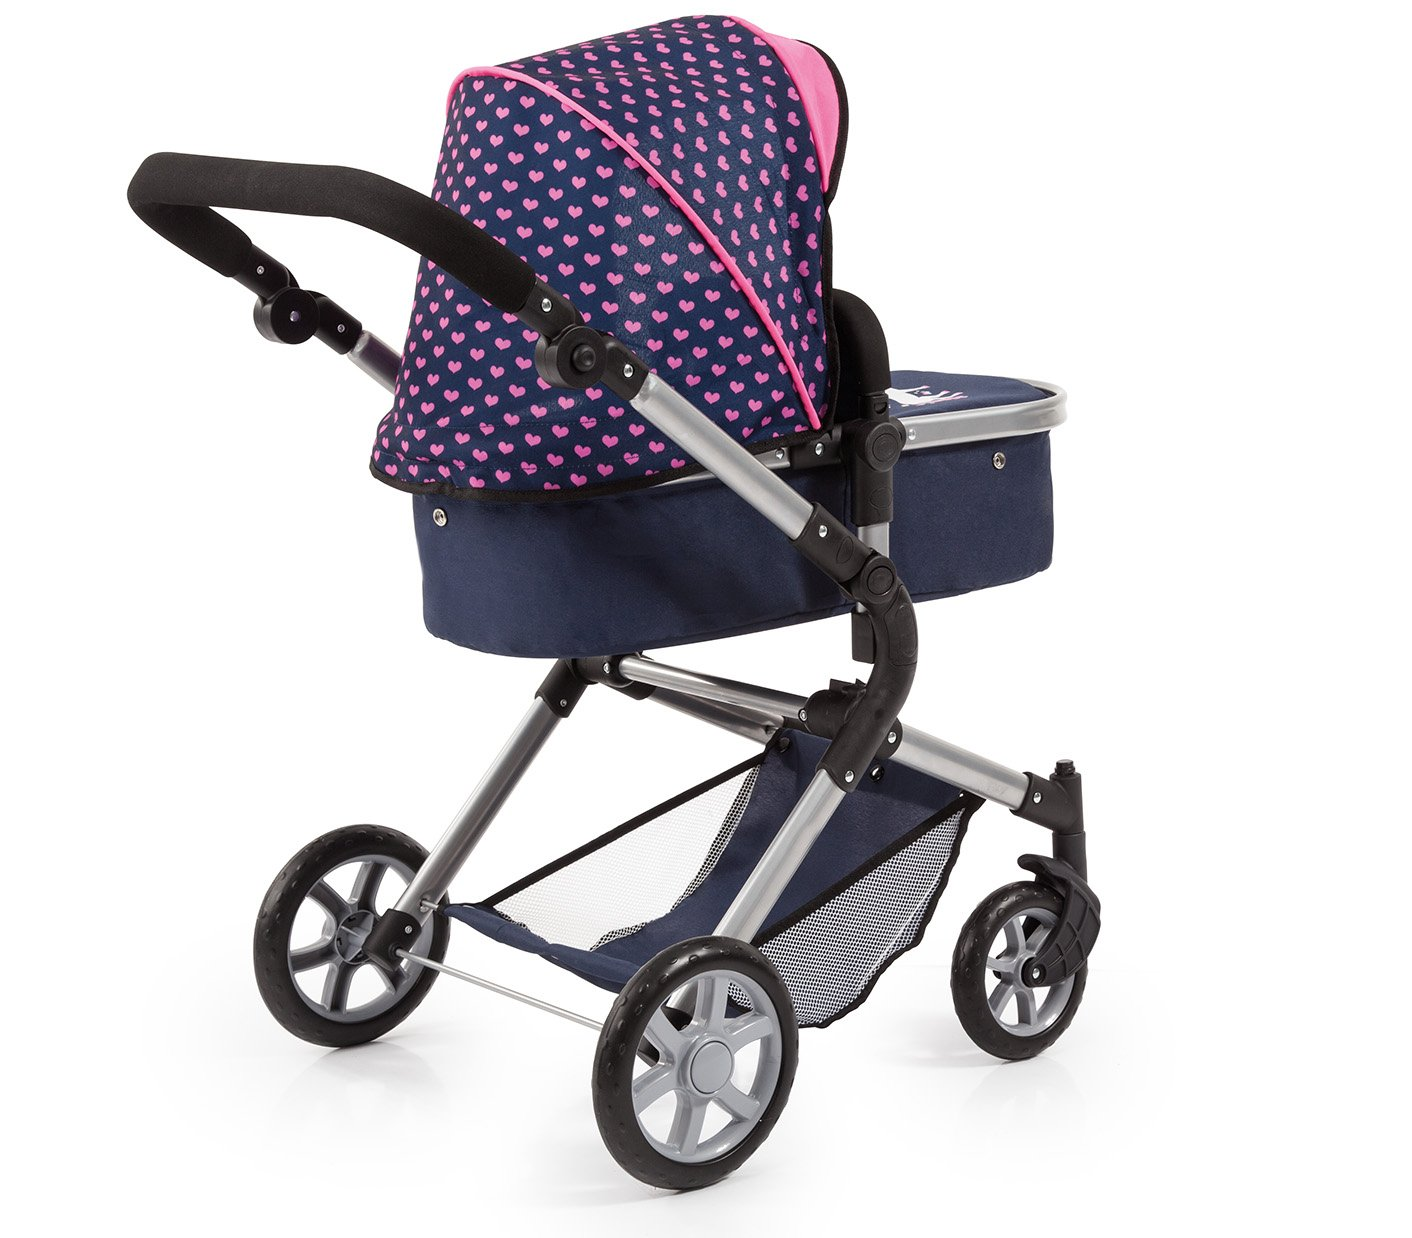 Bayer Design 18154AA City Neo Dolls Pram with Changing Bag, Blue/Pink by Bayer (Image #4)